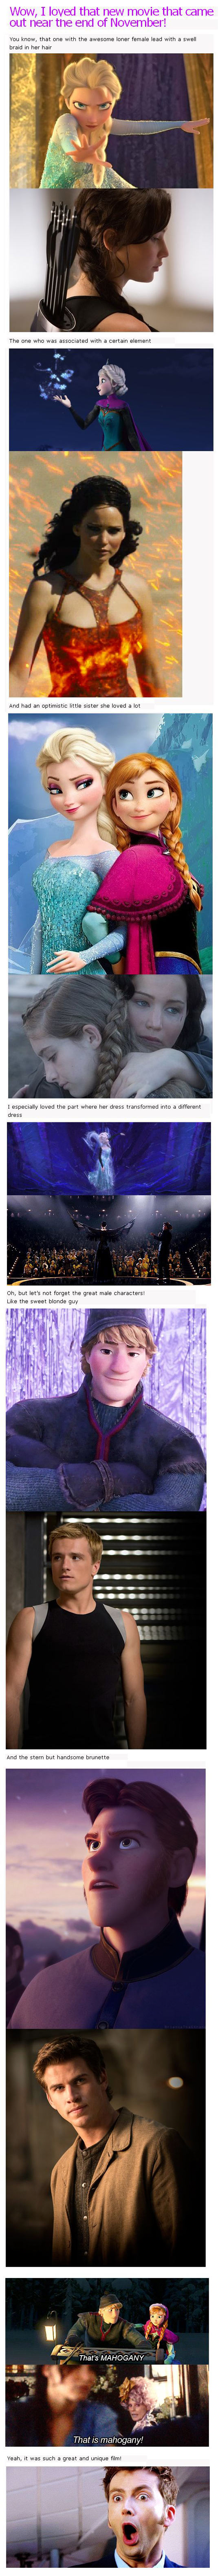 funny-Frozen-Hunger-Games-movie